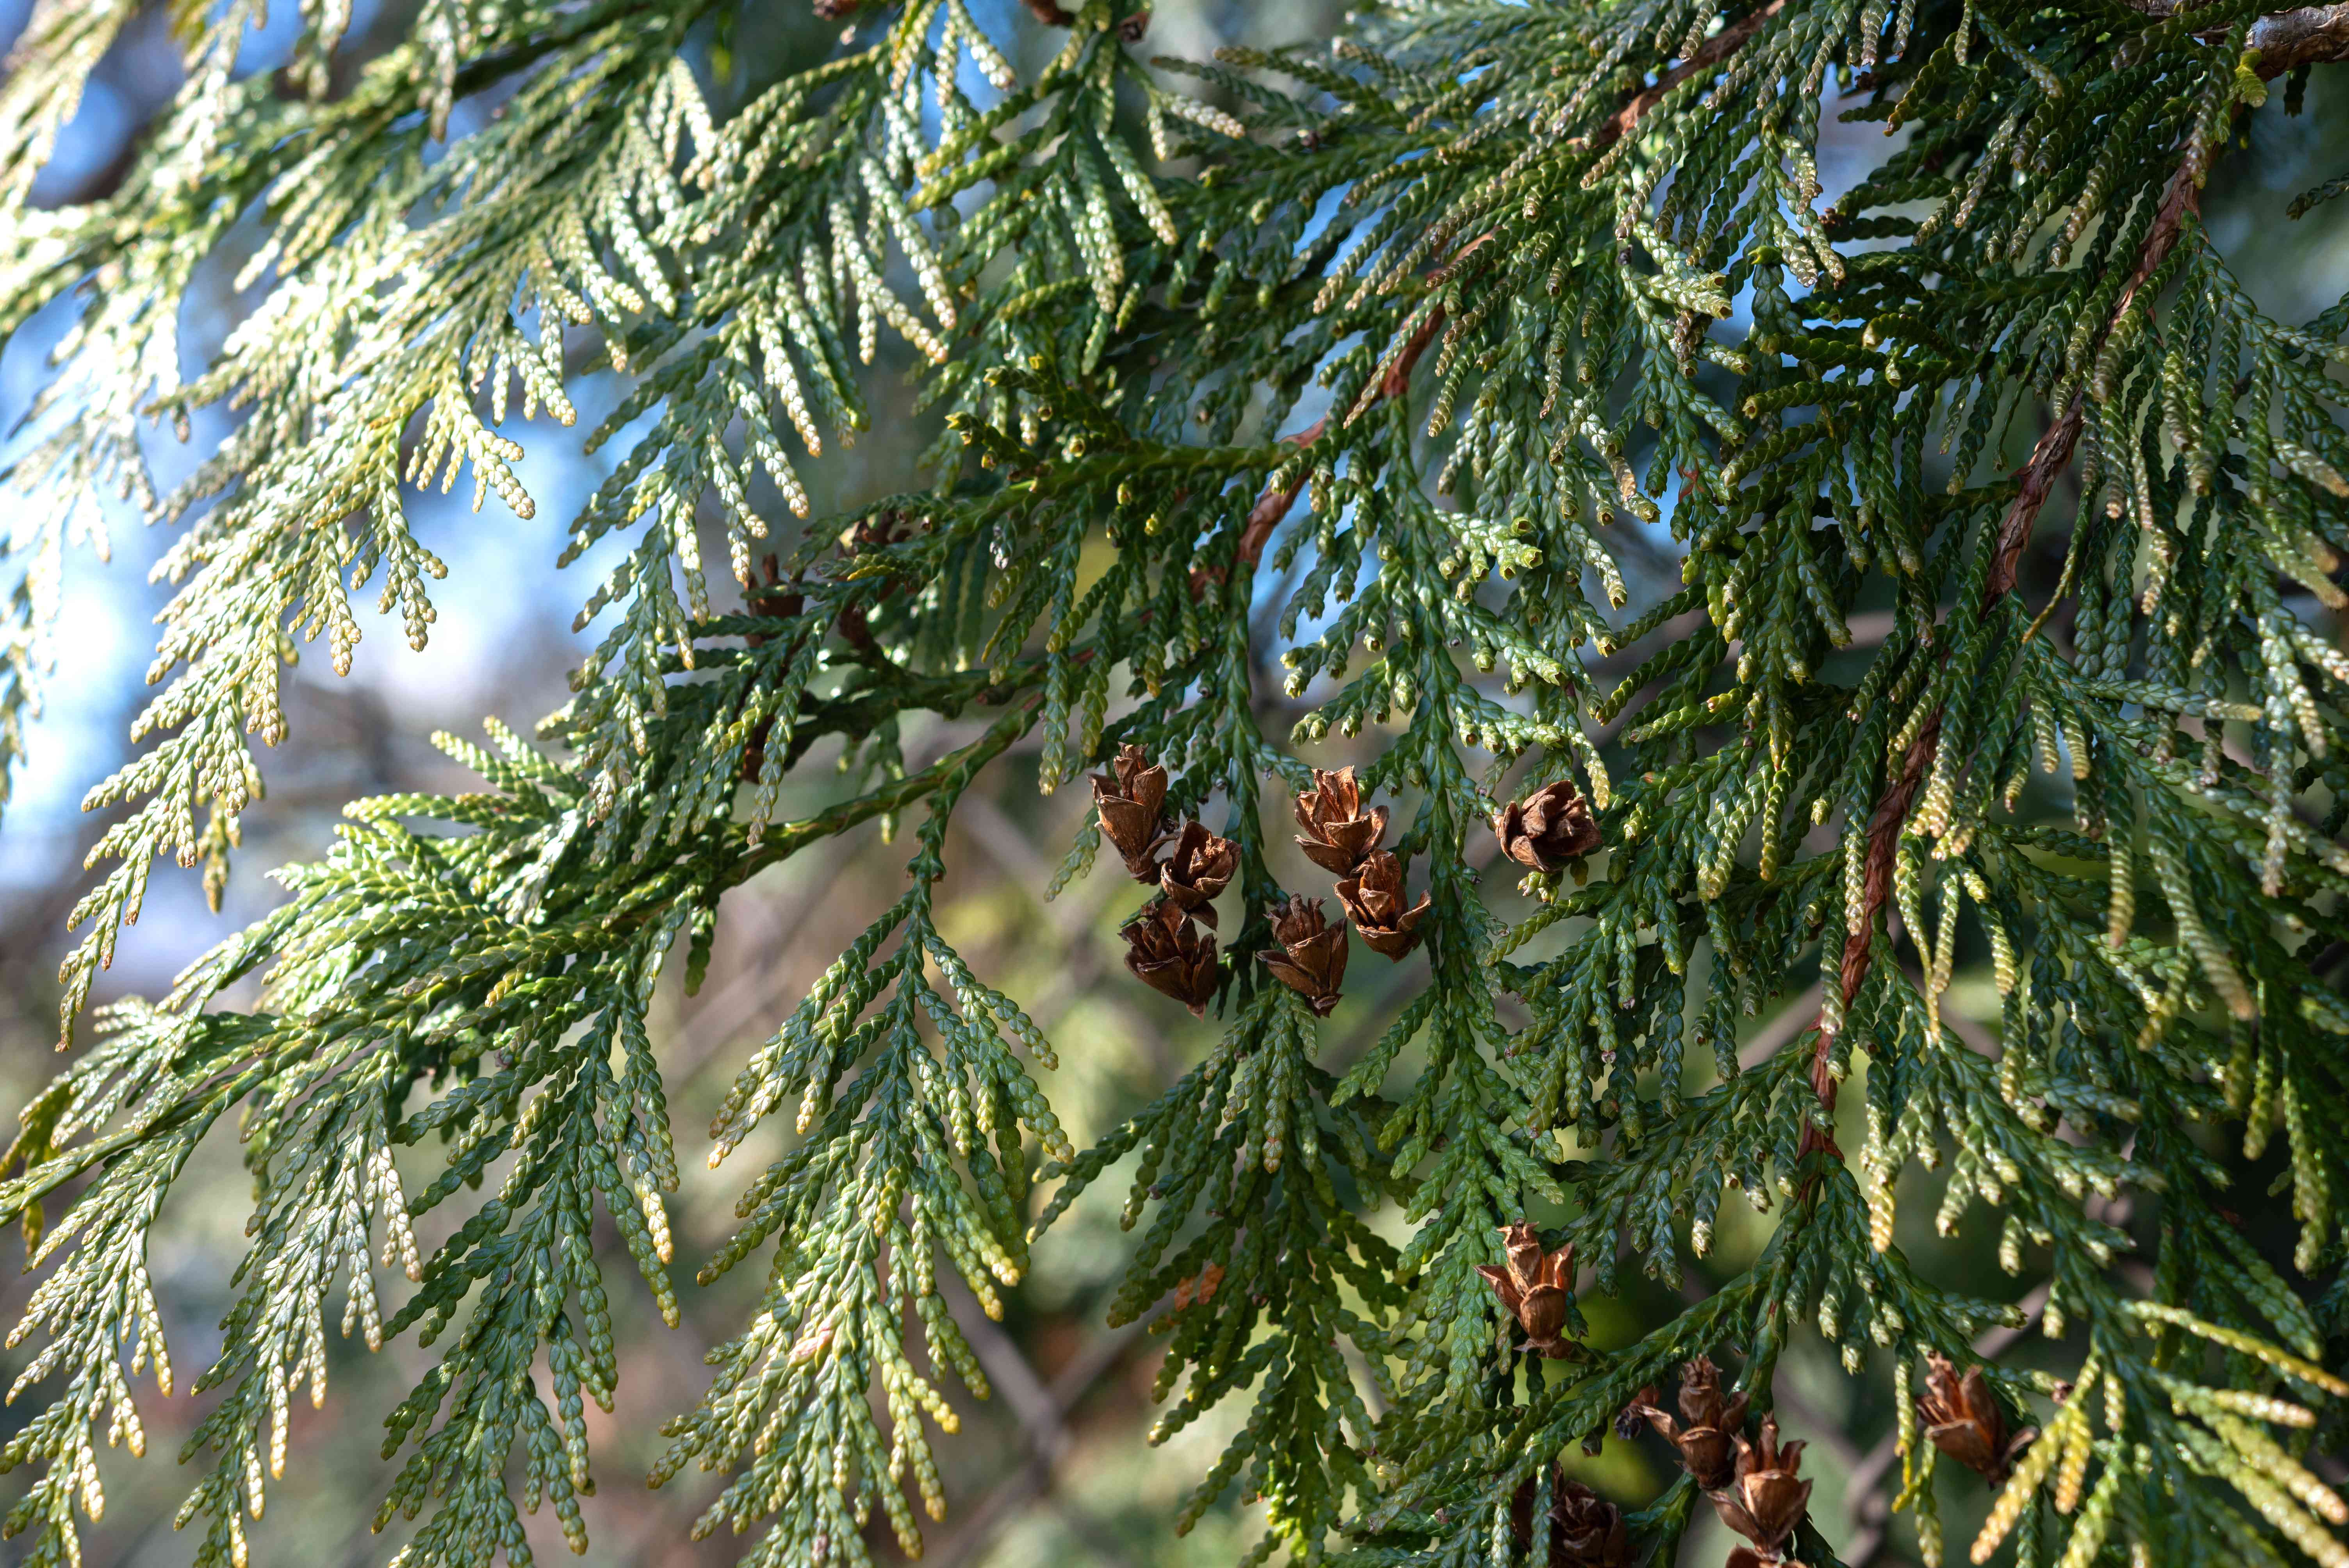 Emerald green arborvitae tree branches with pine cones on branches